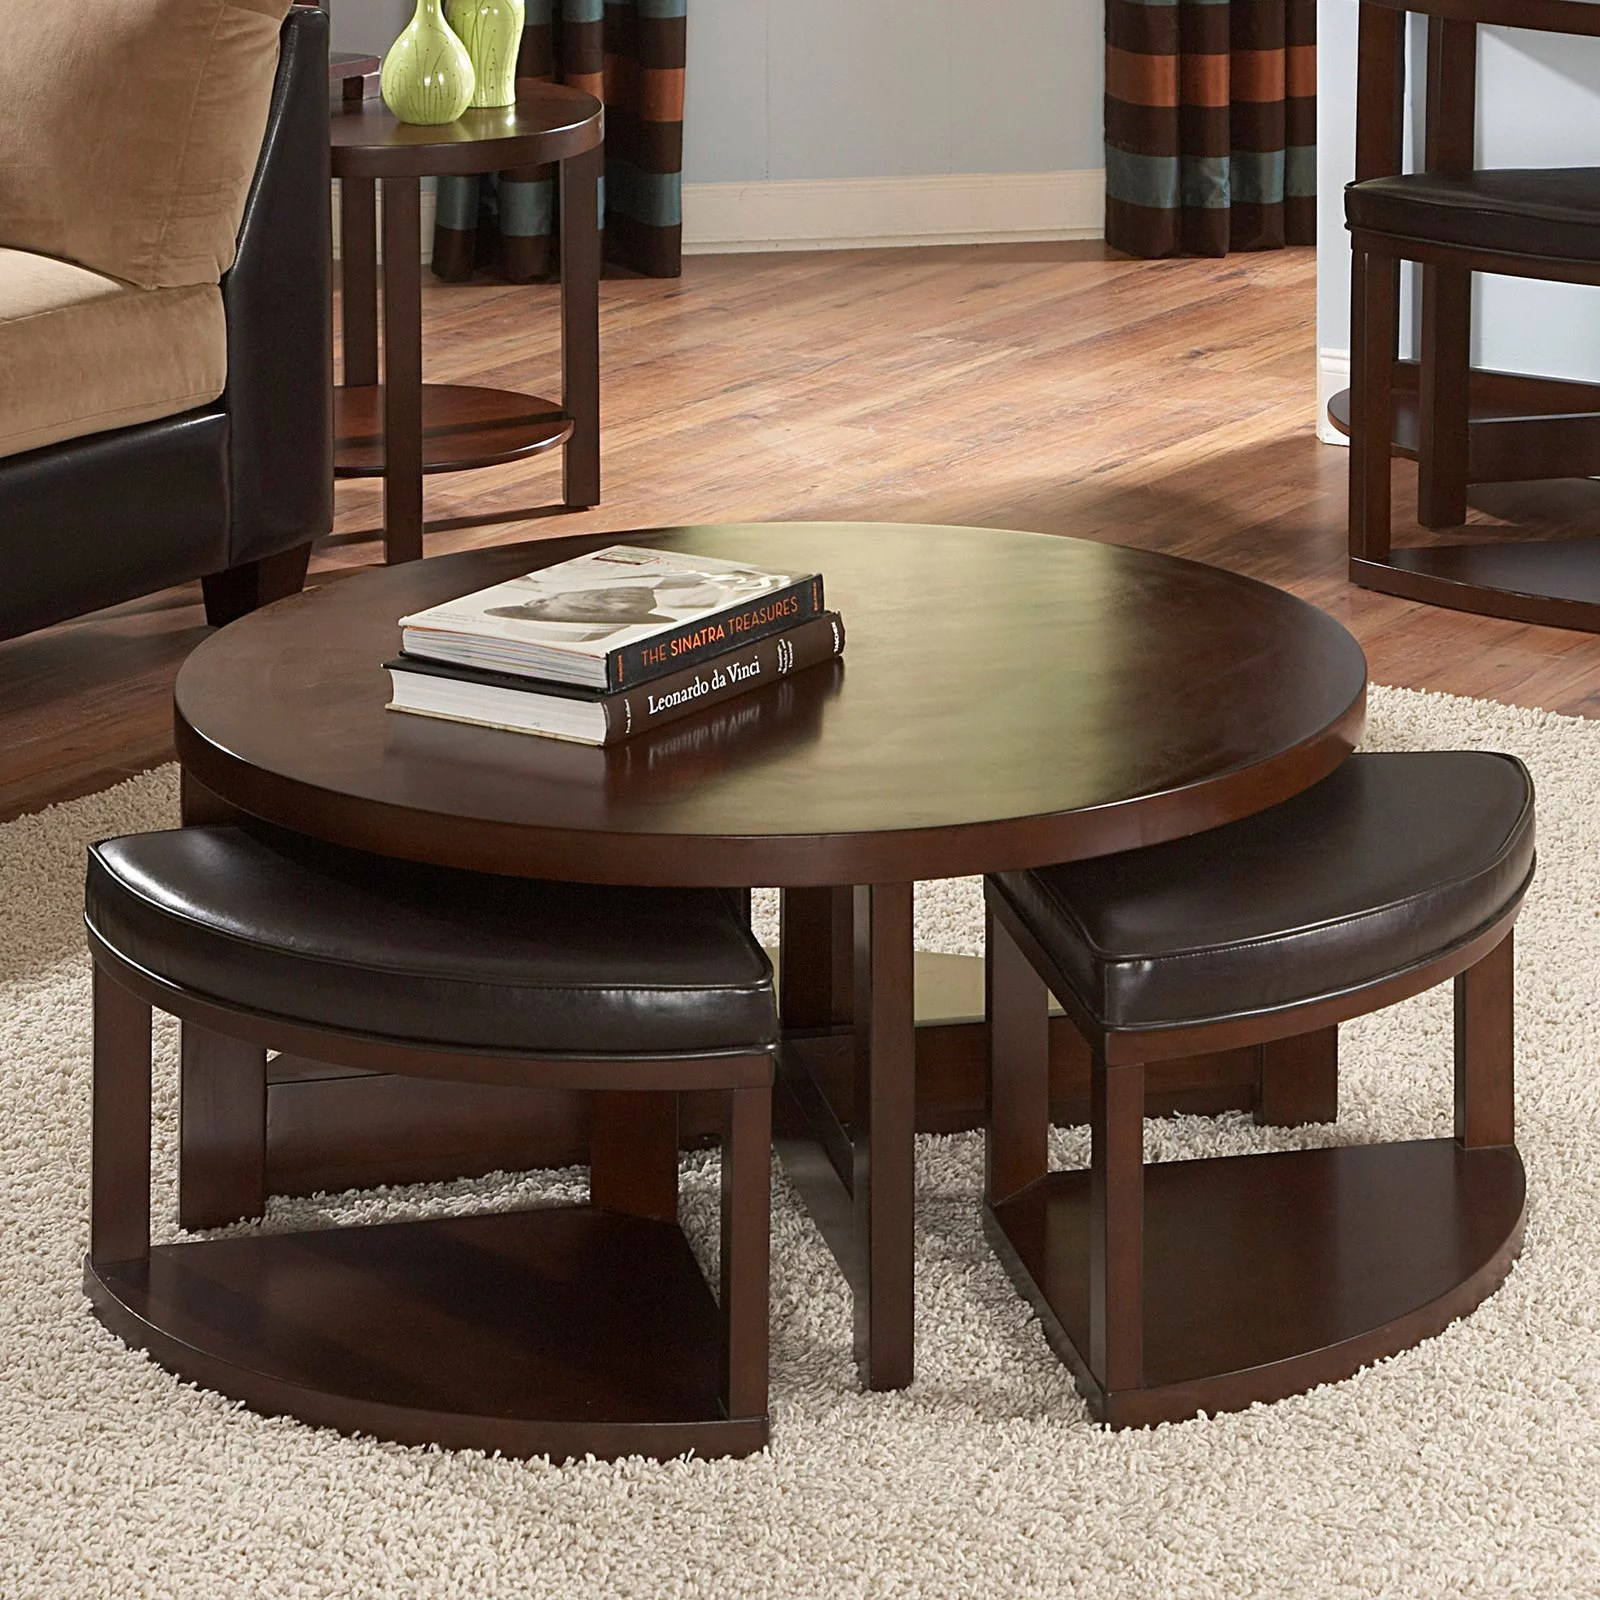 weston home brussel ii round brown cherry wood coffee table with 4 ottomans walmart com